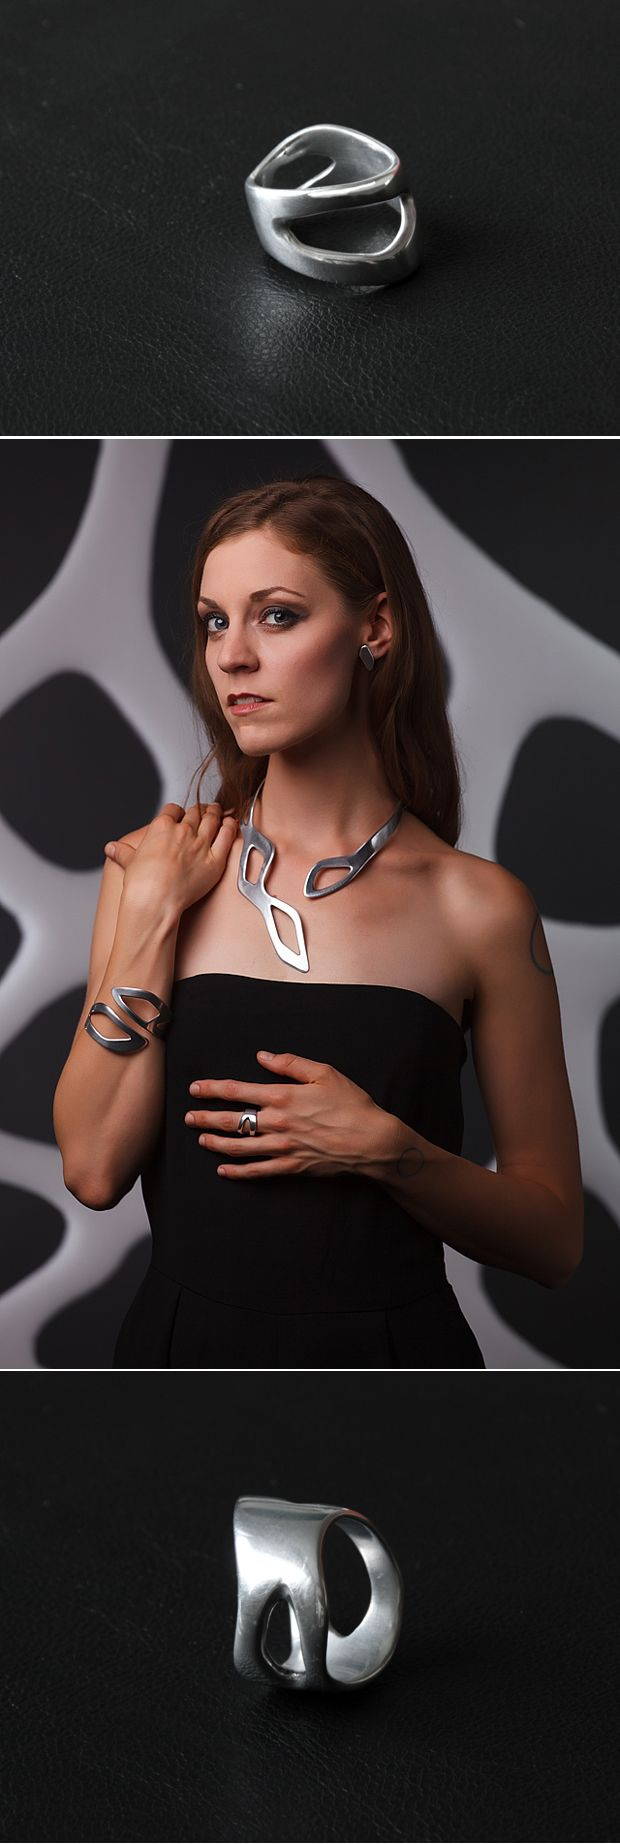 FLUID collection. Tomas Holub - minimalist jewelry made of anodized and polished aluminum. Enjoy your own piece of aluminum!